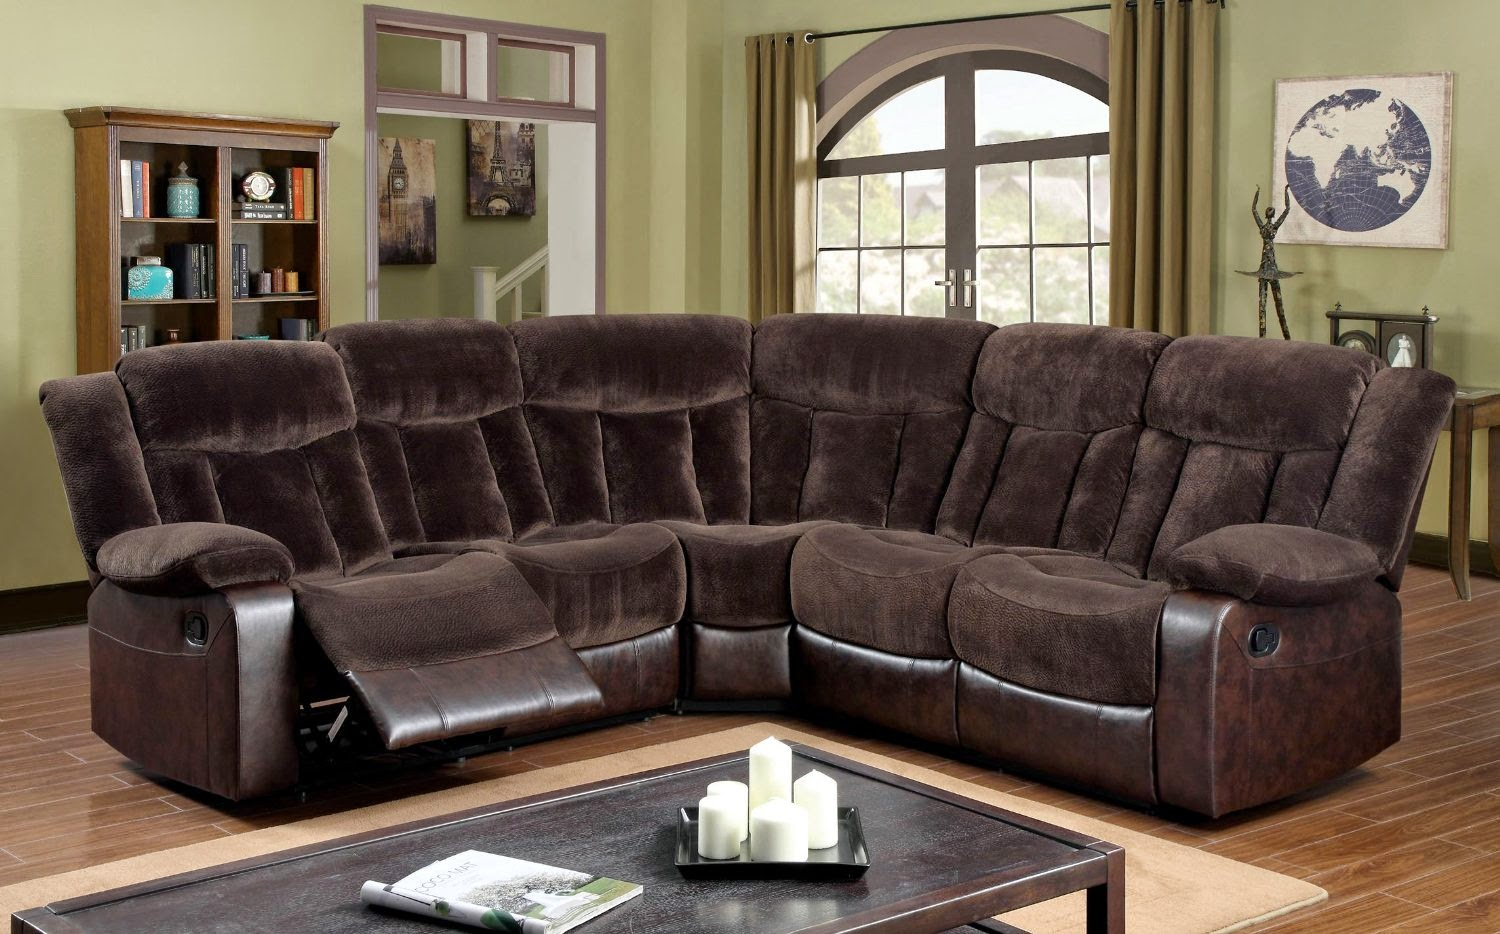 curved modular sofa australia andreas furniture sofas reviews leather recliner